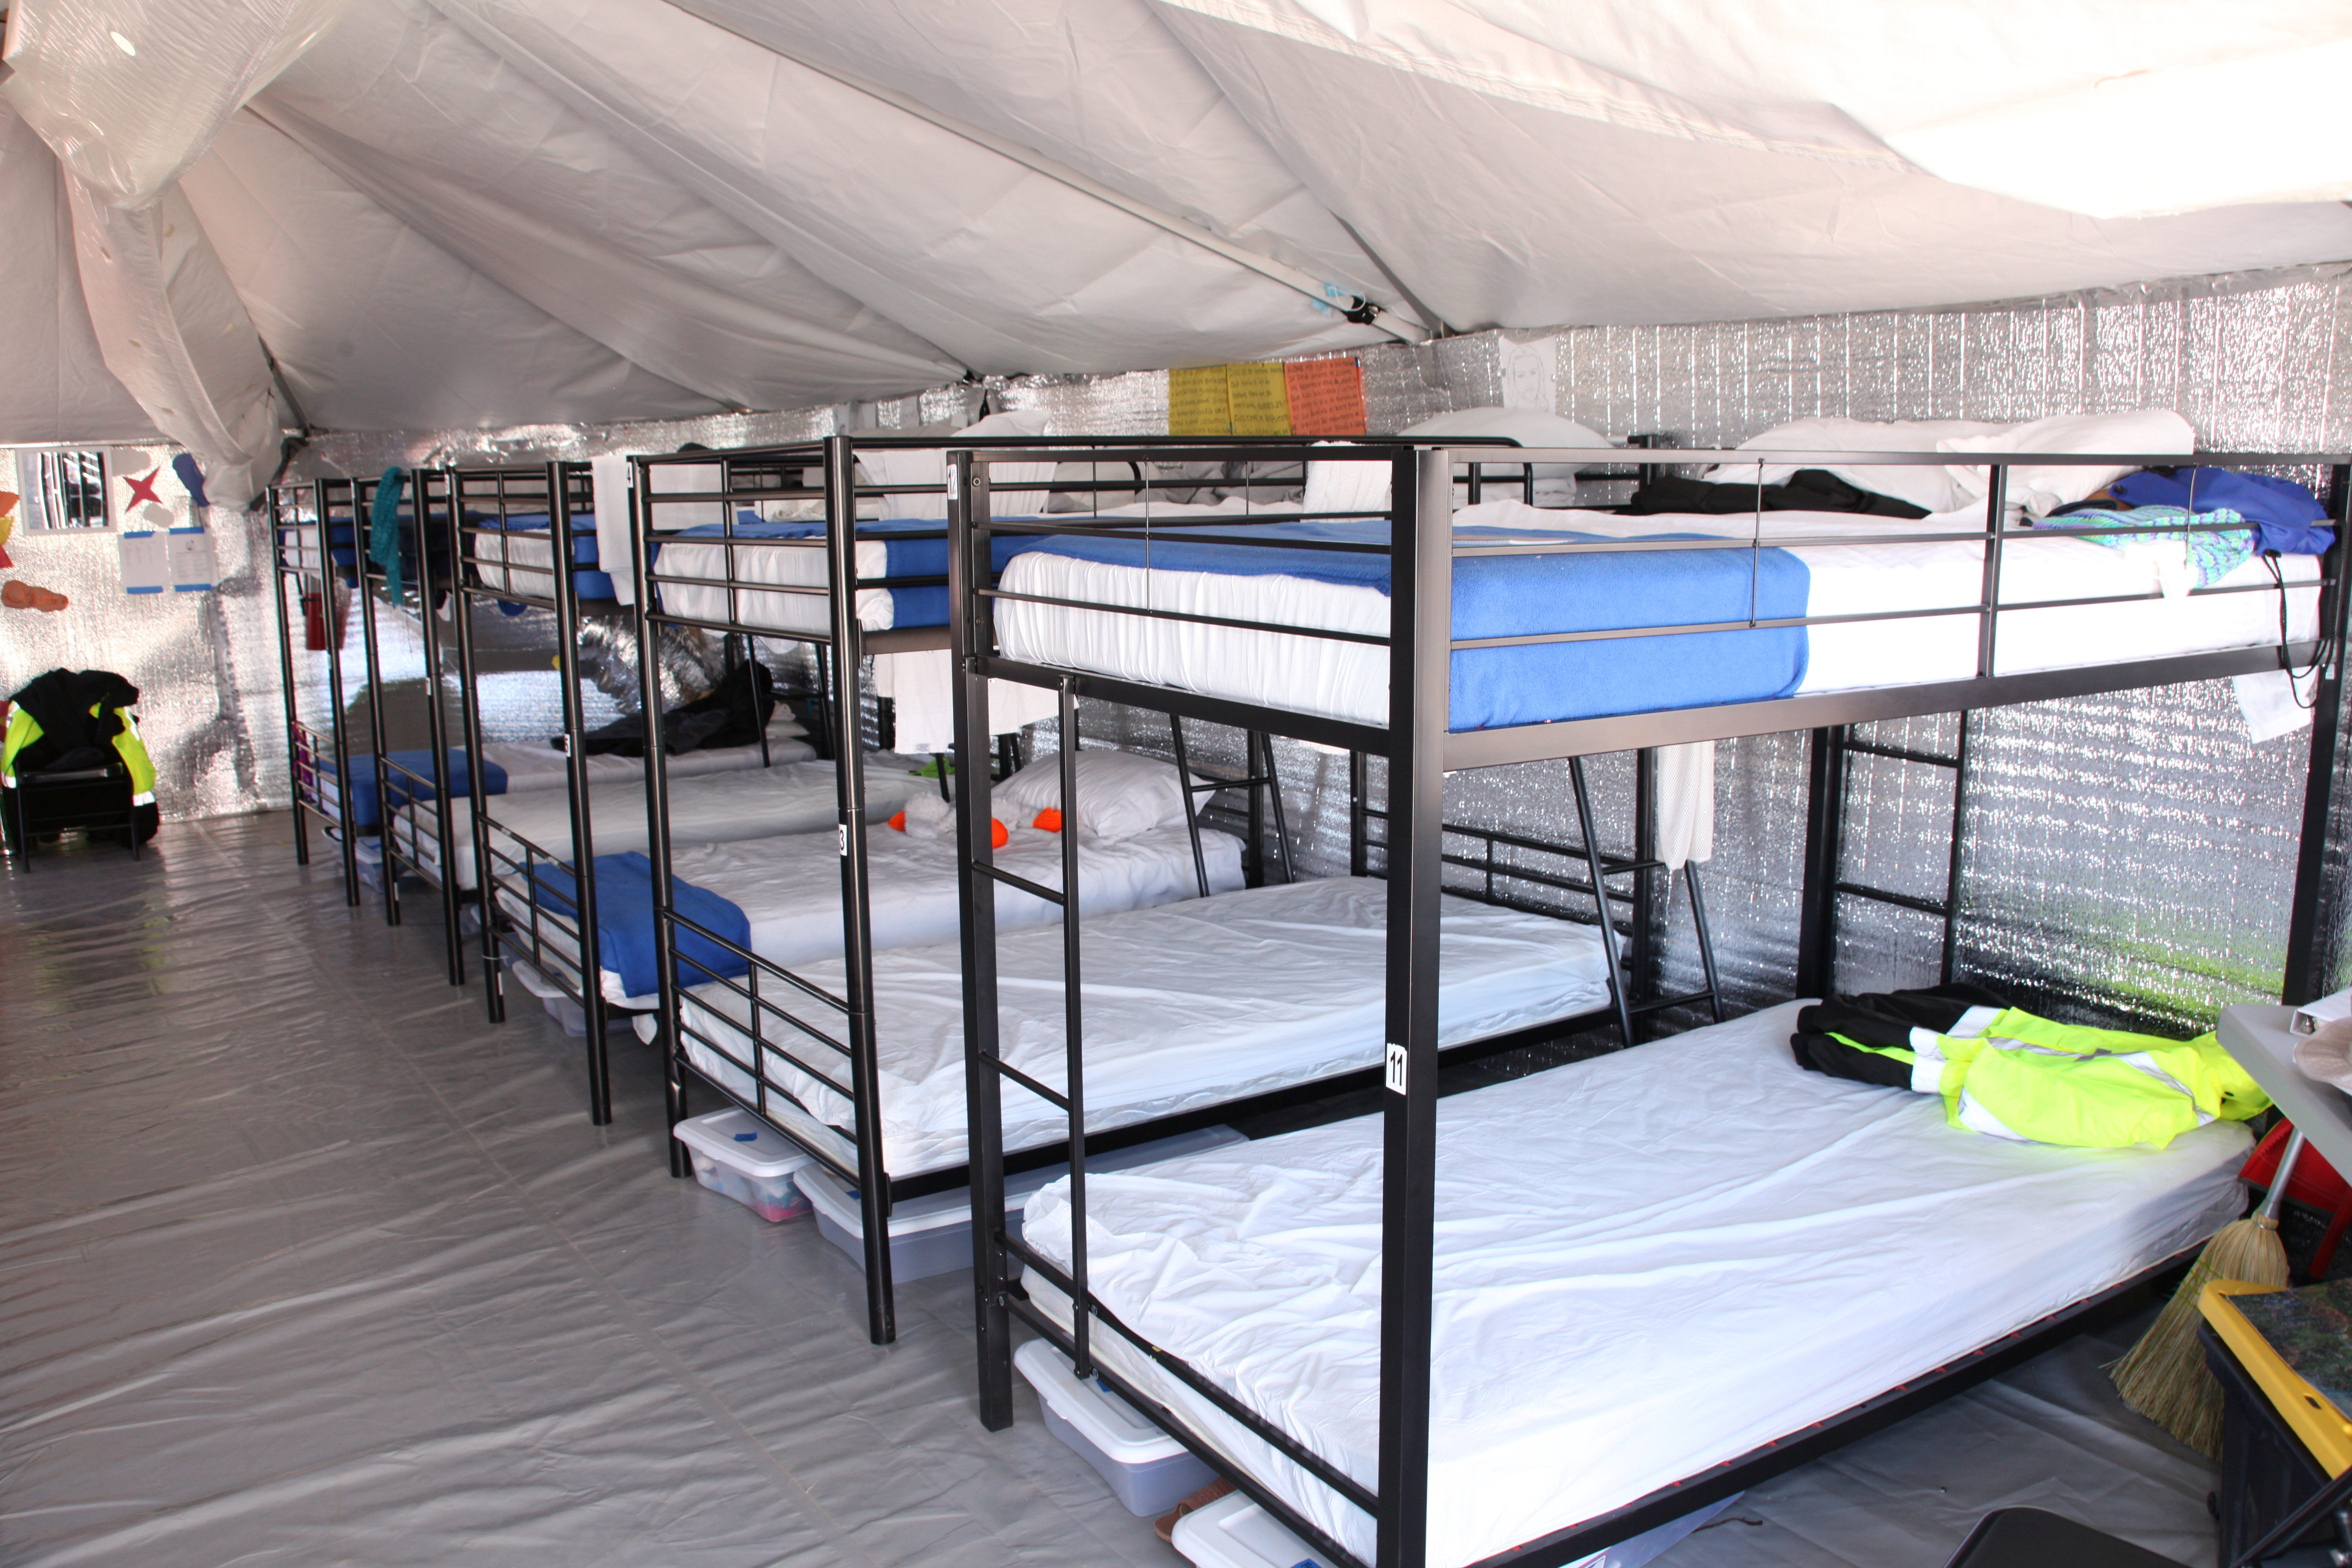 Bunk beds are seen at a tent city set up to hold immigrant children separated from their parents or who crossed the U.S. border on their own in Tornillo, Texas, U.S., in this U.S. Department of Health and Human Services (HHS) image released on October 12, 2018. Courtesy HHS/Handout via REUTERS